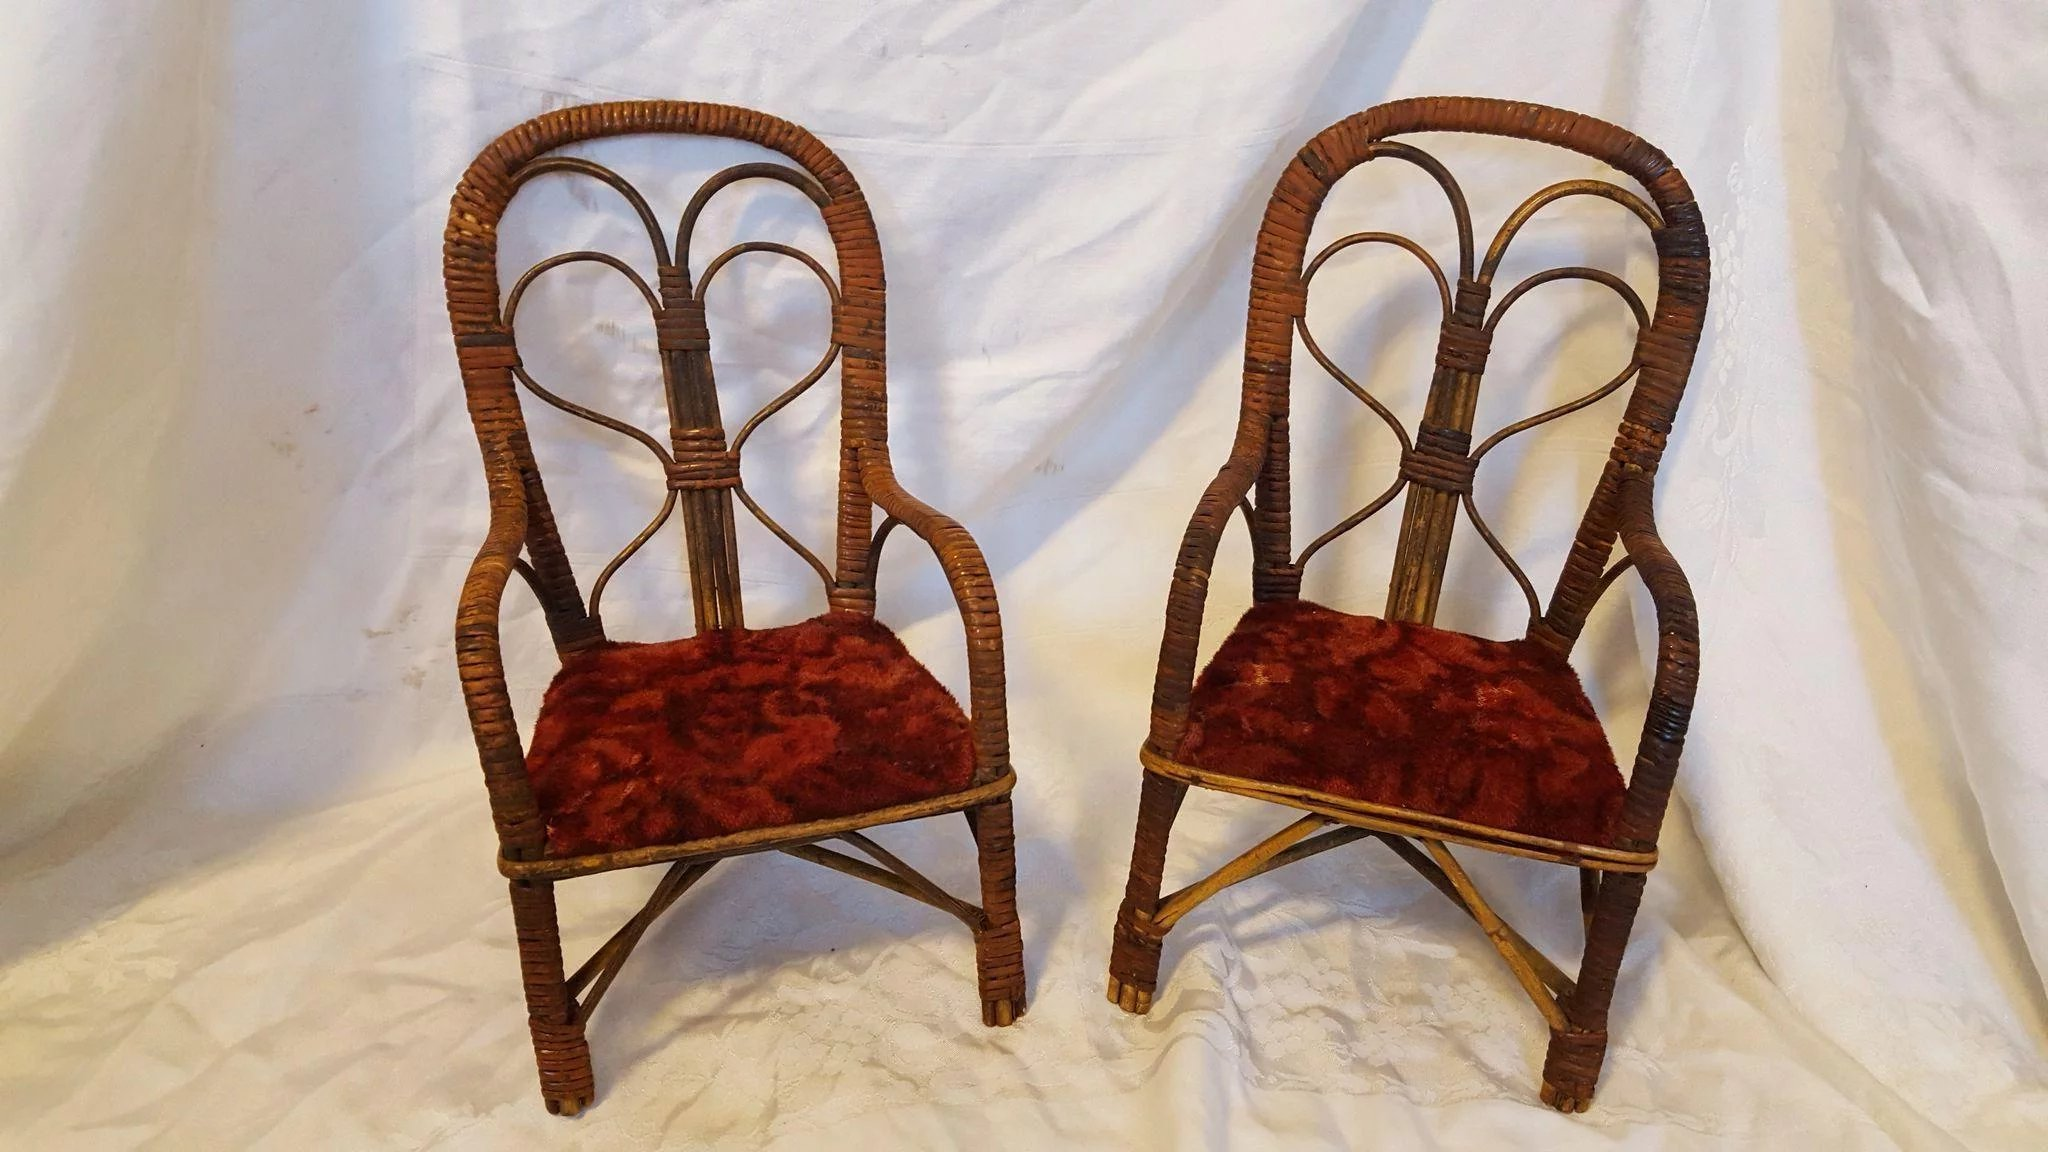 Very Rare Pair of Antique Wicker Doll Chairs Circa 1890s